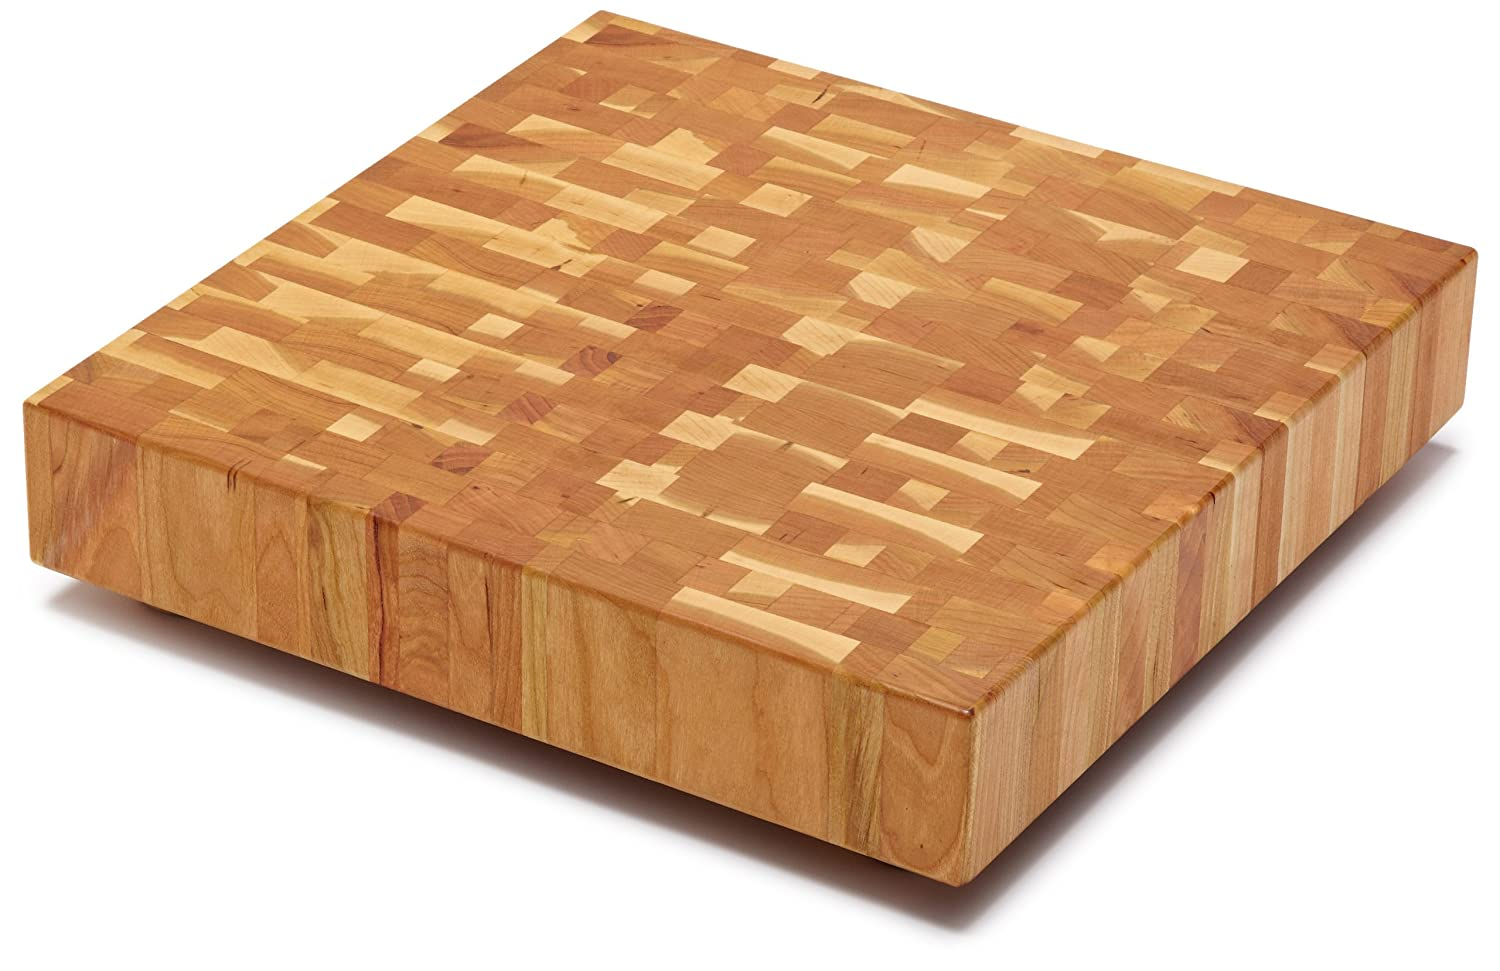 Snow River Cherry End Grain Square Butcher Block, 14-Inch by 14-Inch by 2-1/2-Inch 7V03153